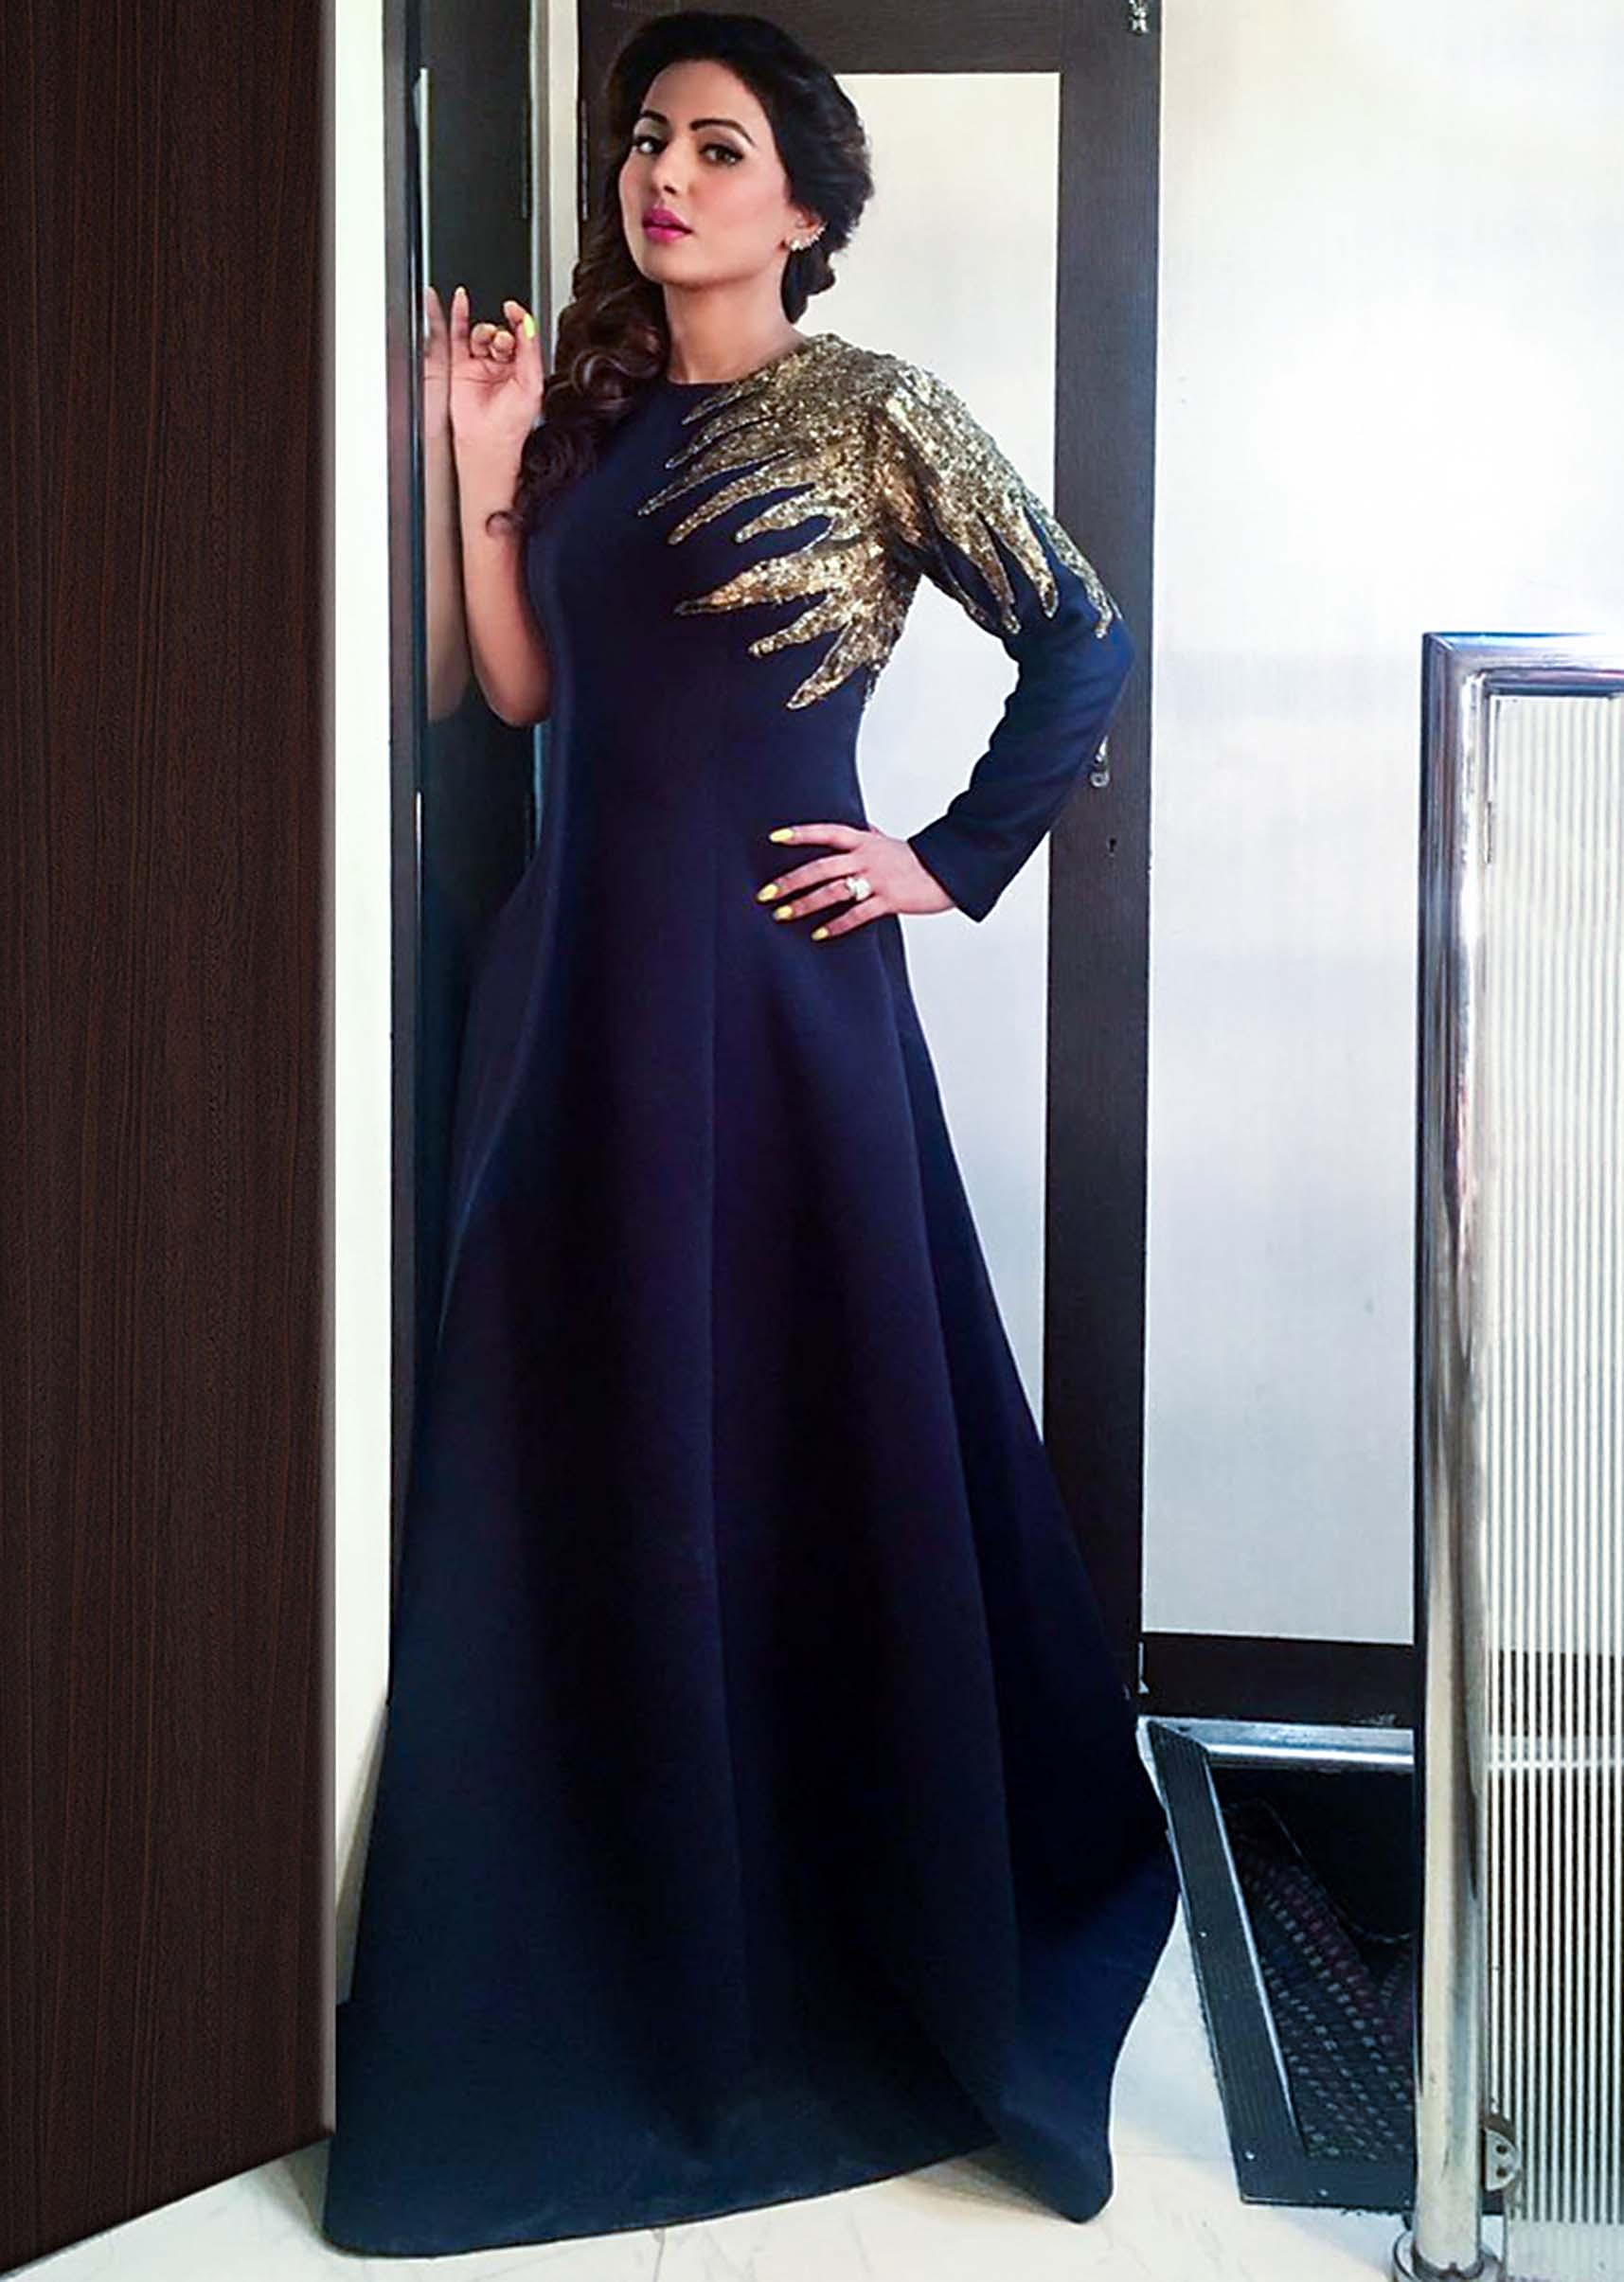 0f8ad951c2b Hina Khan in kalki navy blue gown in sequin embroidered yoke